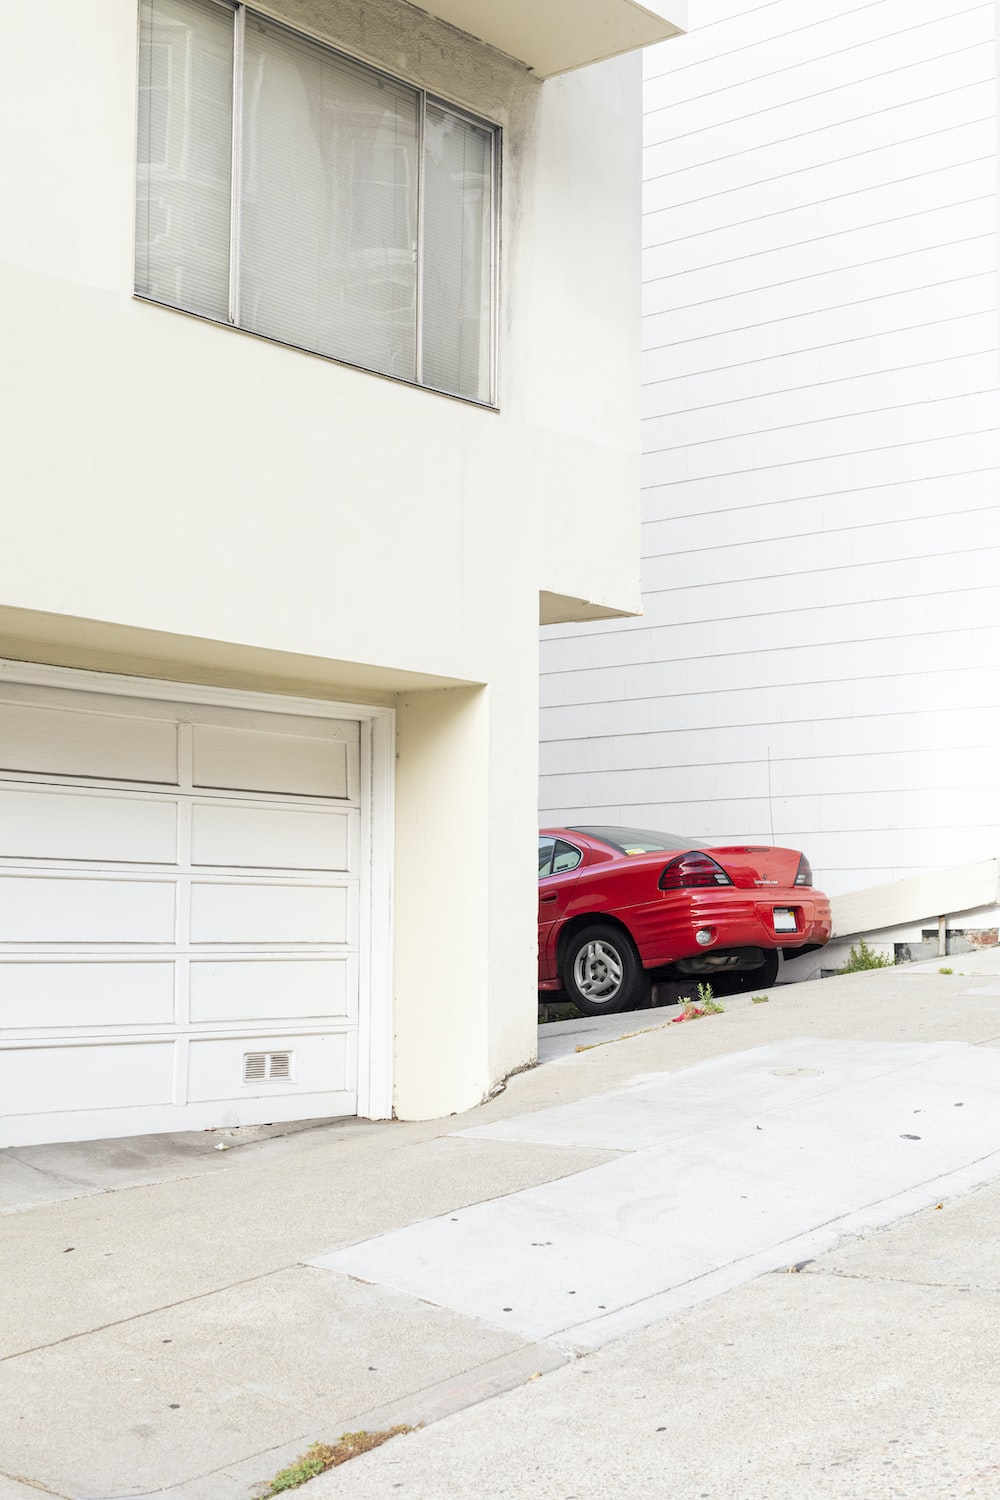 red car beside building